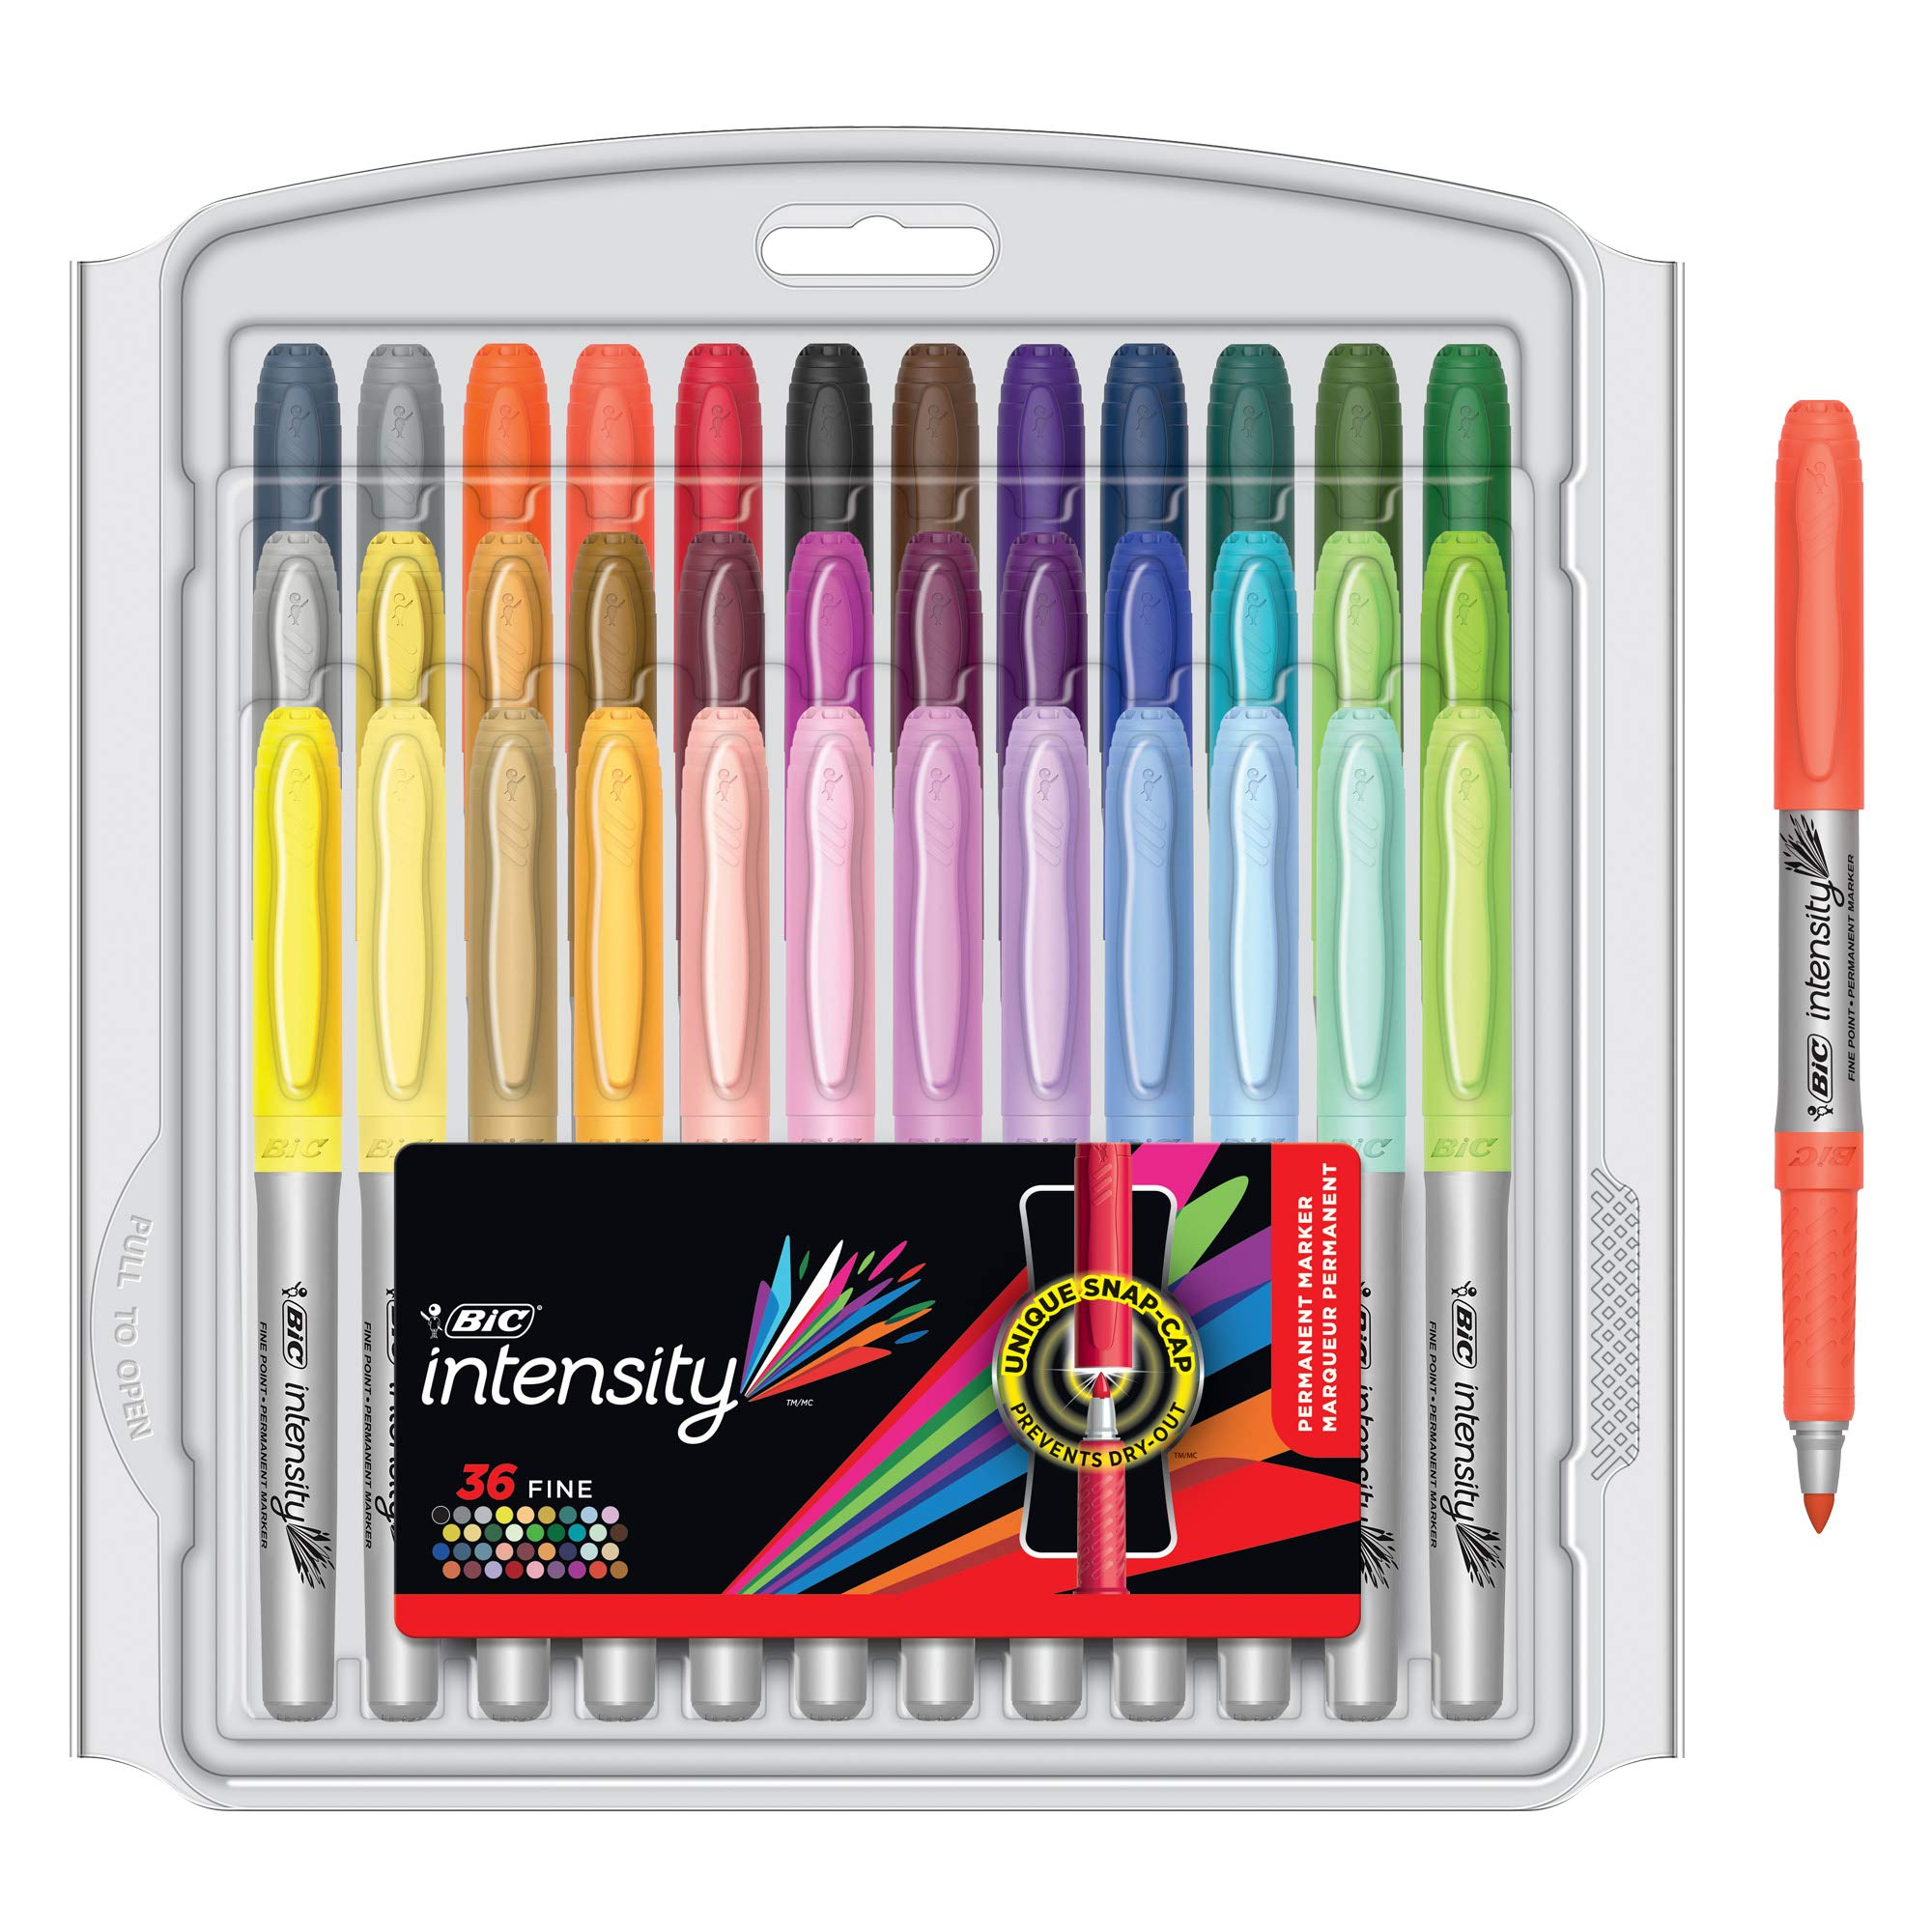 BIC Intensity Fashion Permanent Markers, Fine Point, Assorted Colors, 36-Count by BIC